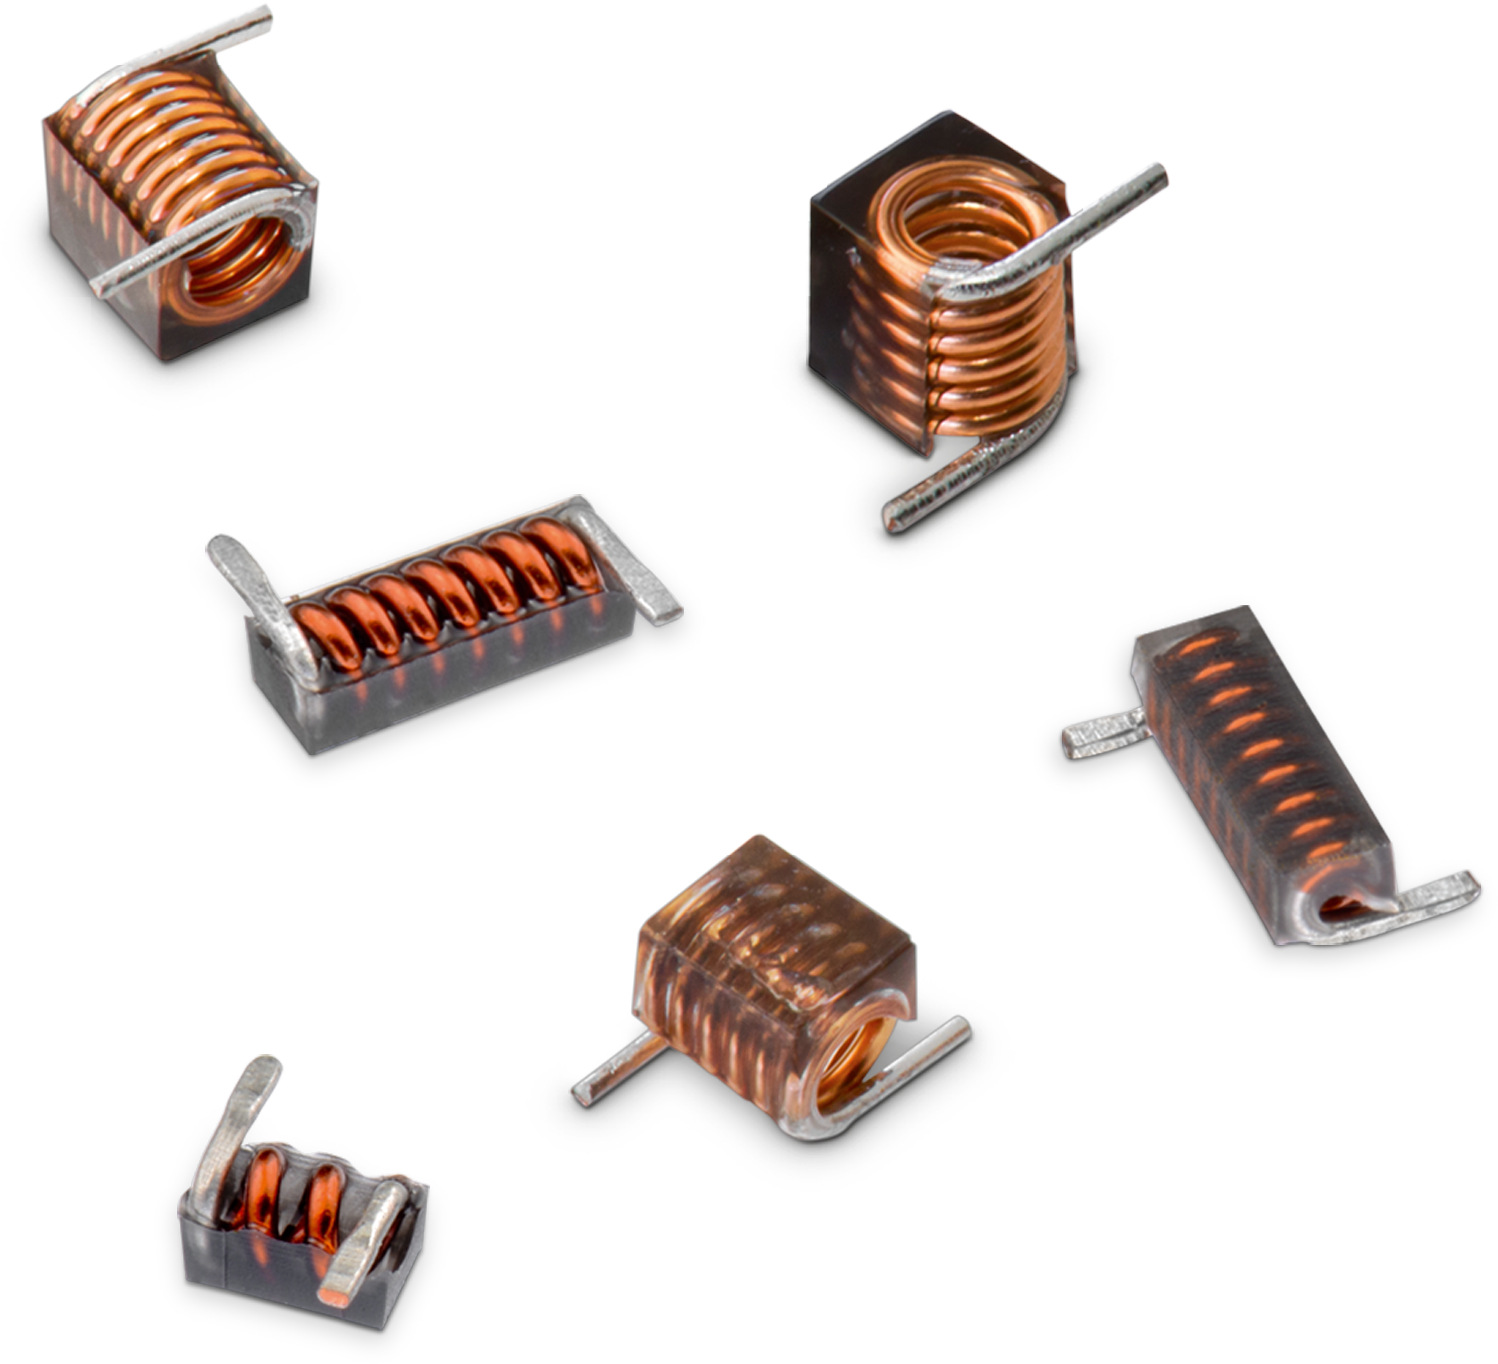 WE-CAIR Air coil Picture